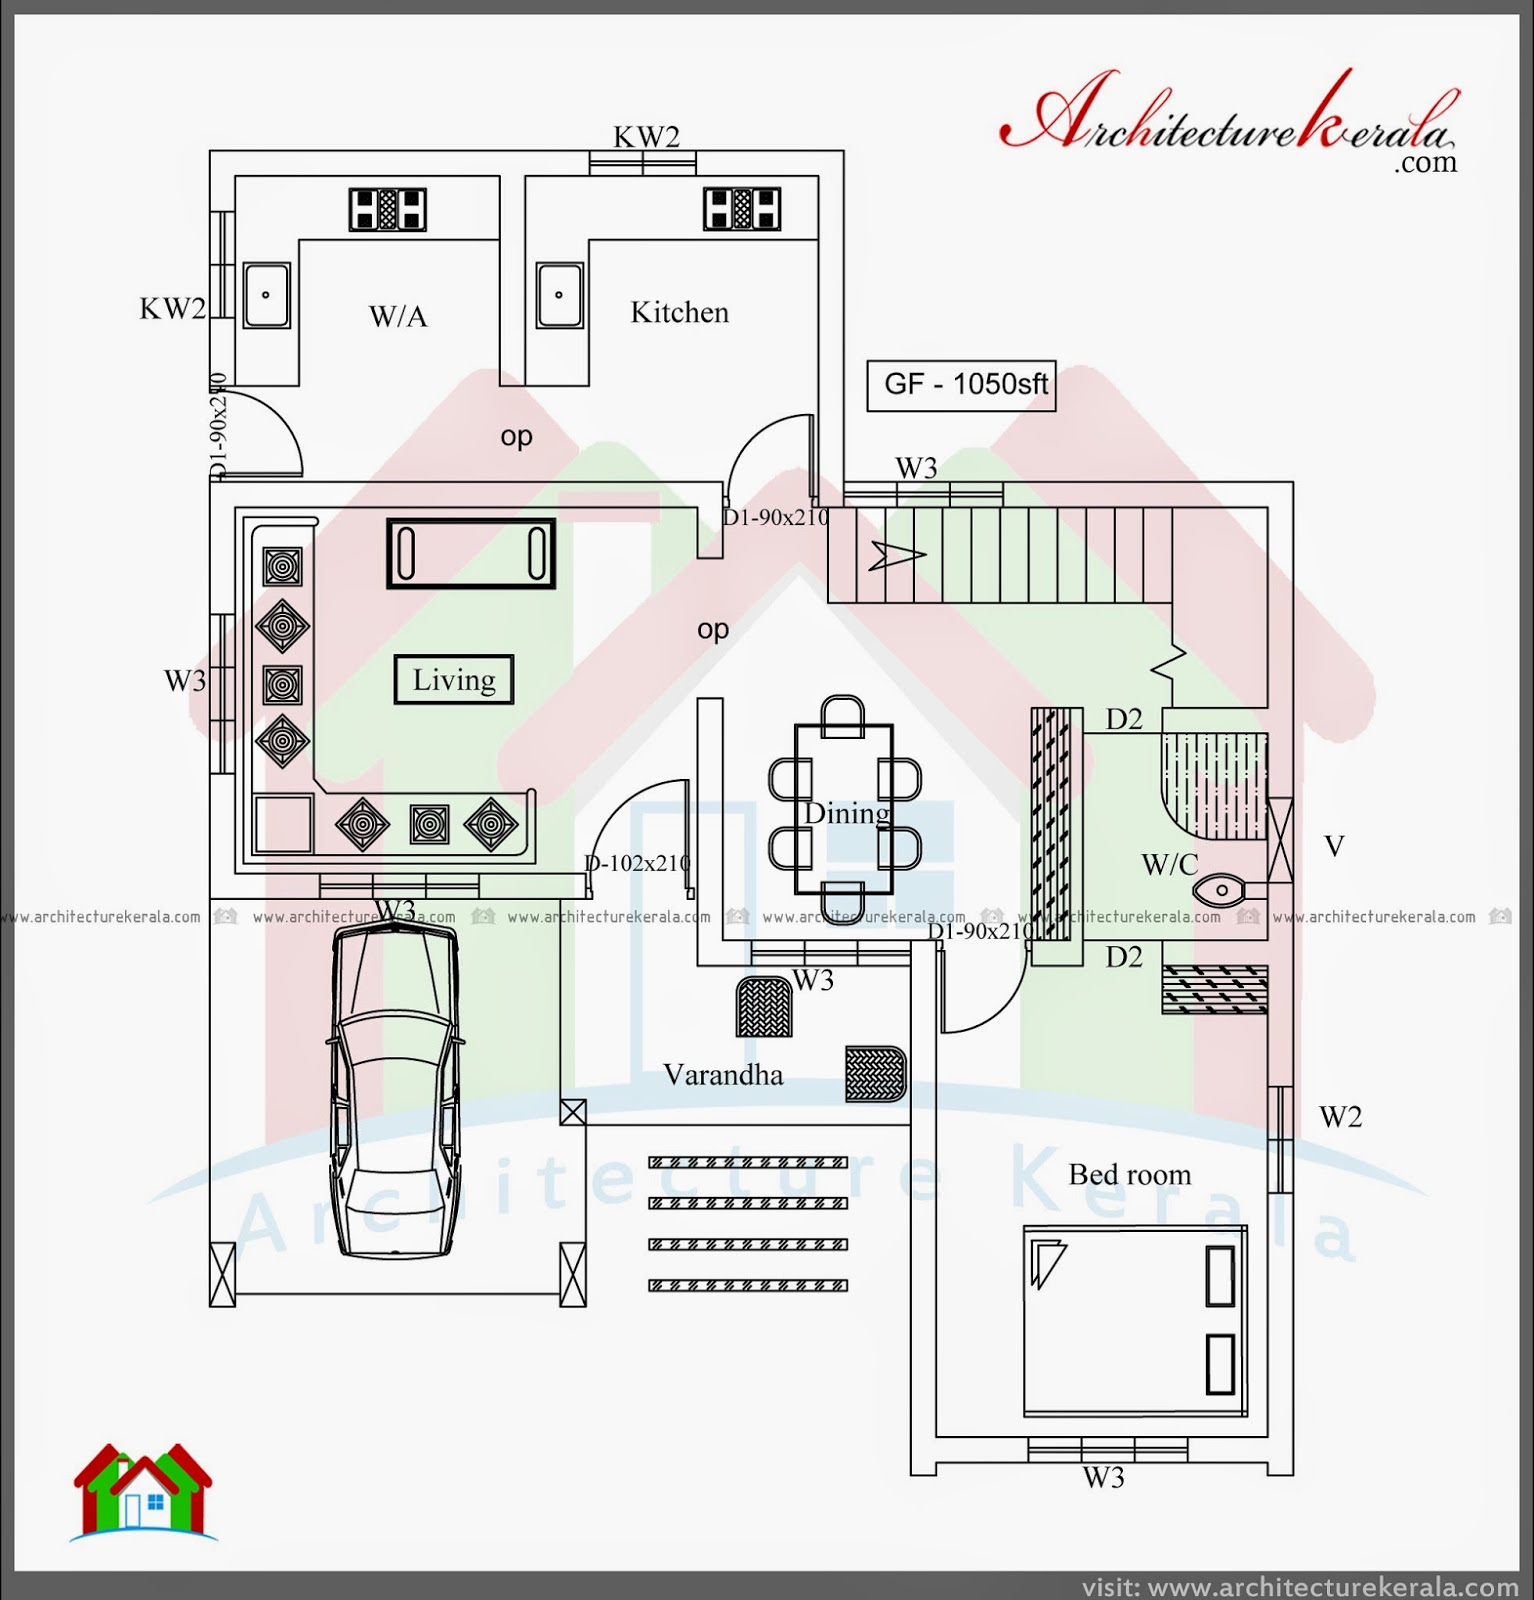 Three bedroom two storey house plan architecture kerala 2 storey house plans